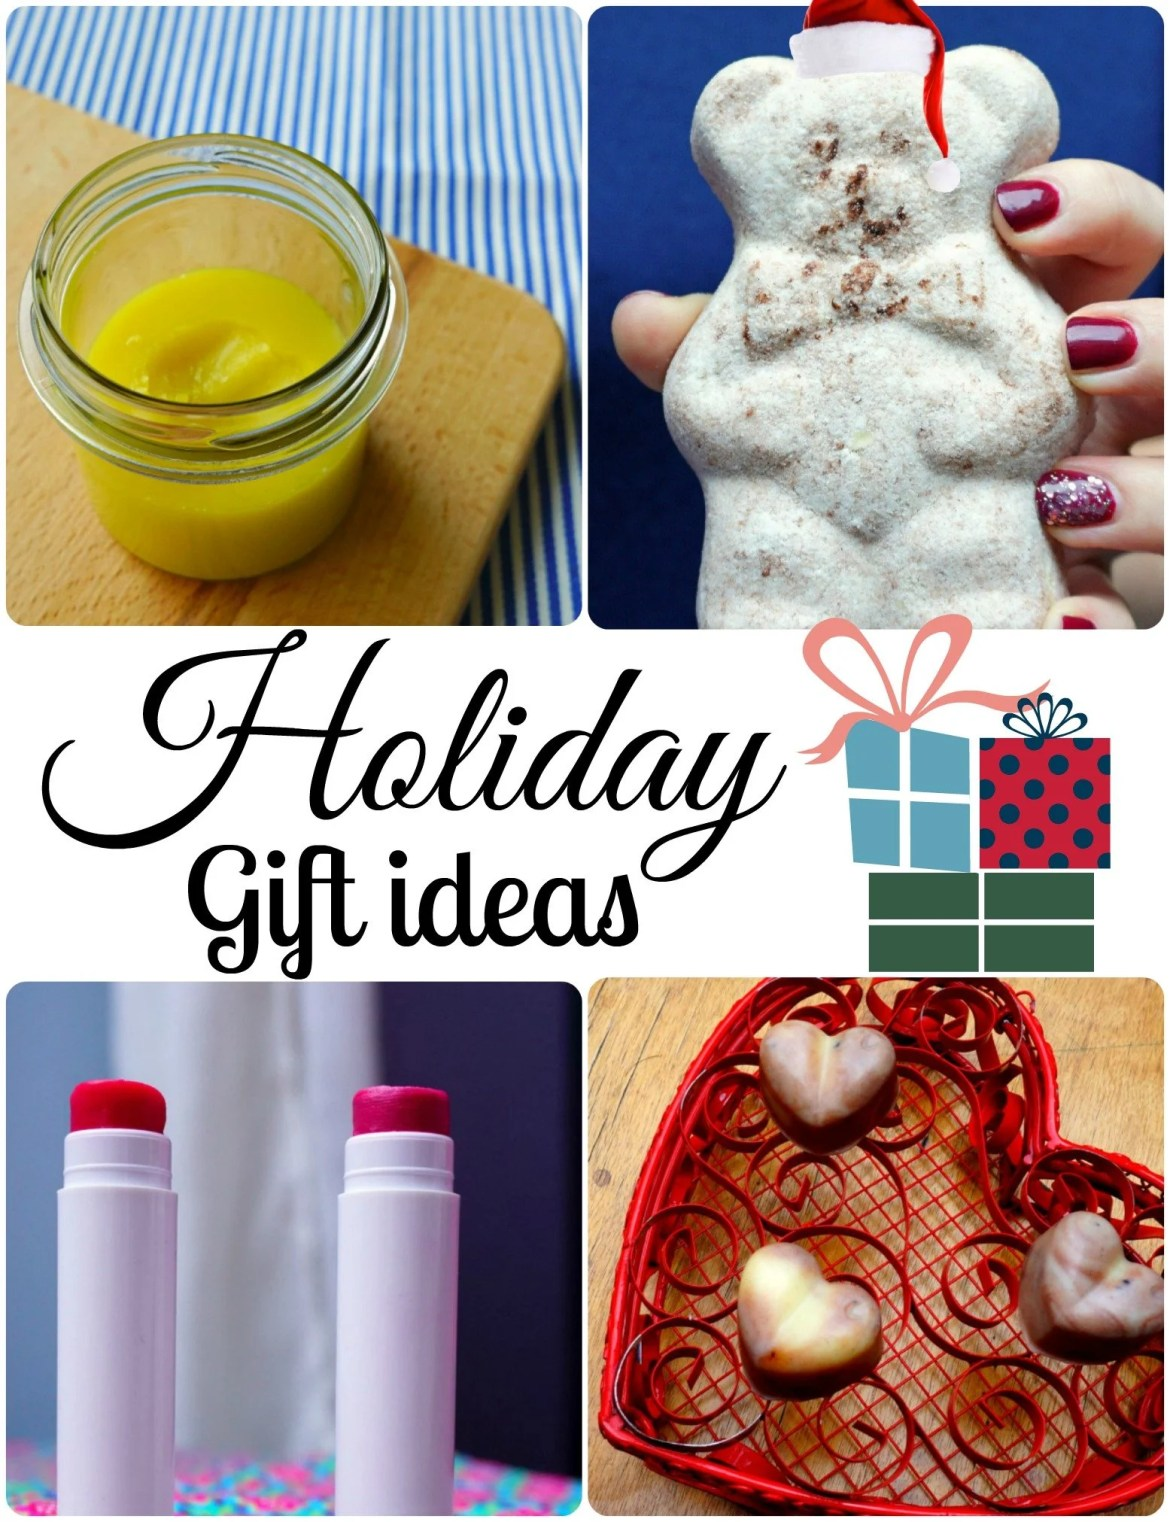 Easy Holiday DIY gift ideas for stock stuffers or as a fun Christmas or New Year's Eve gift! How to tutorials by The Makeup Dummy